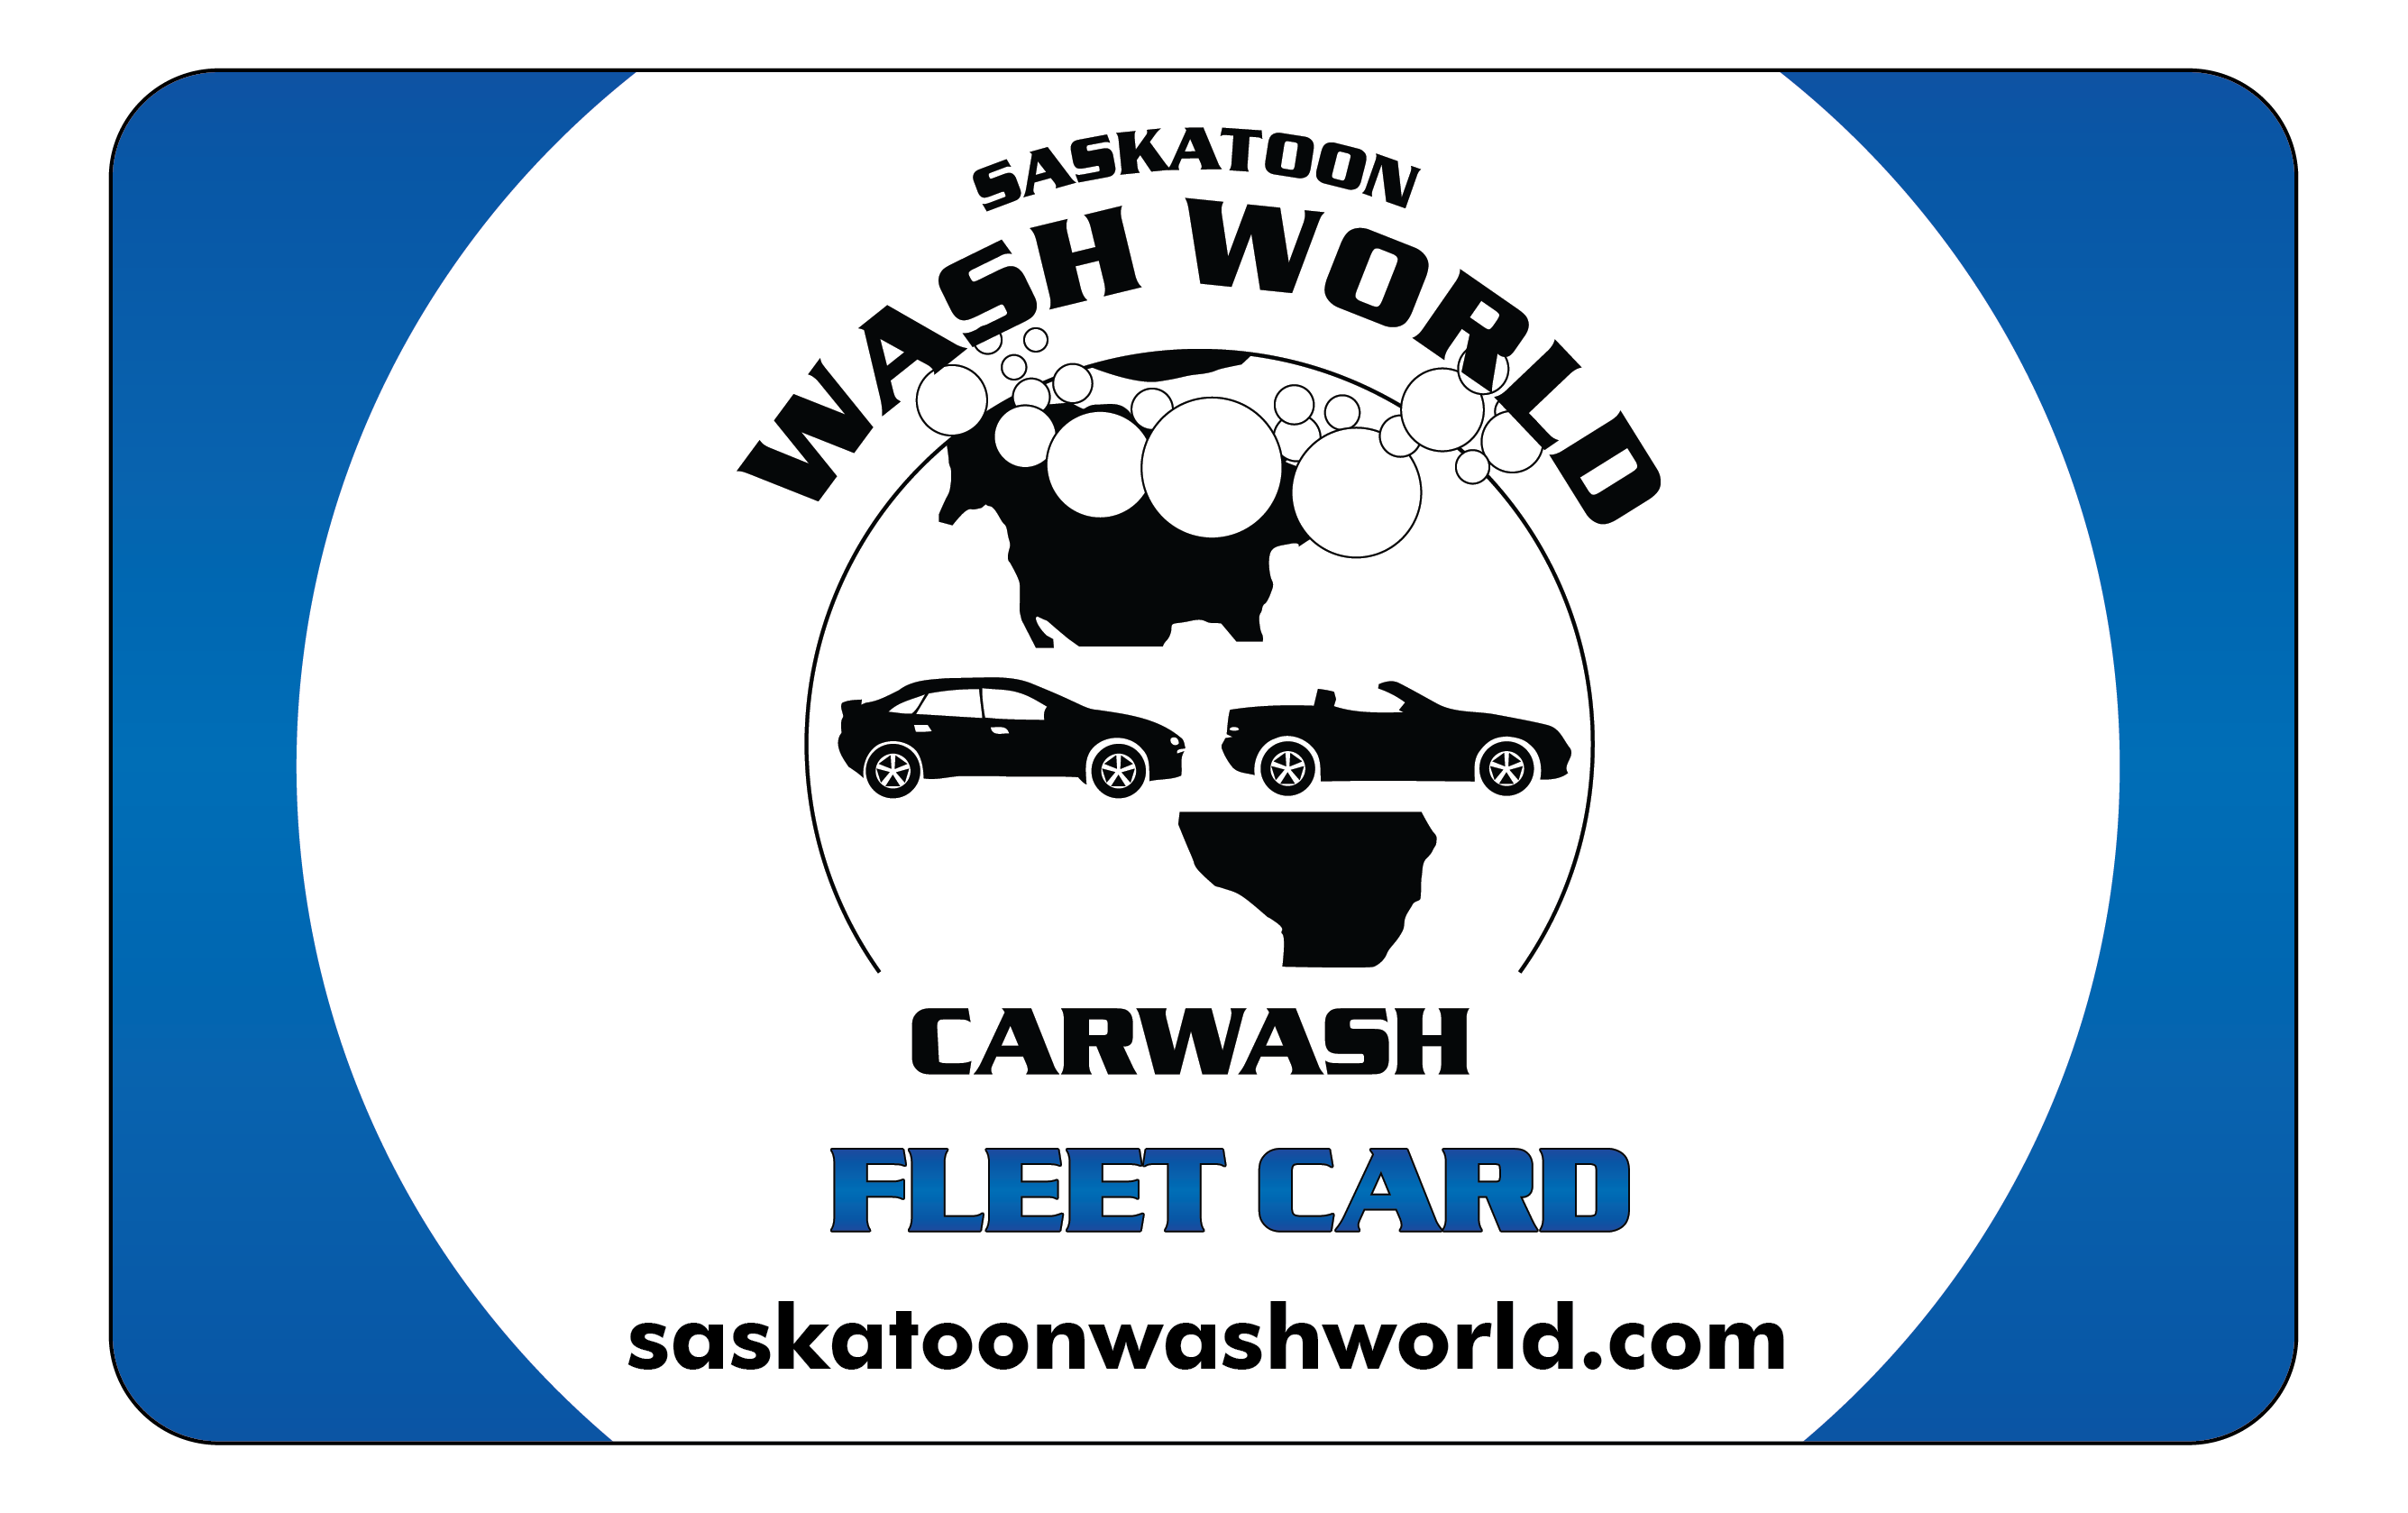 Saskatoon Wash World Fleet WashCard 7-7-2010